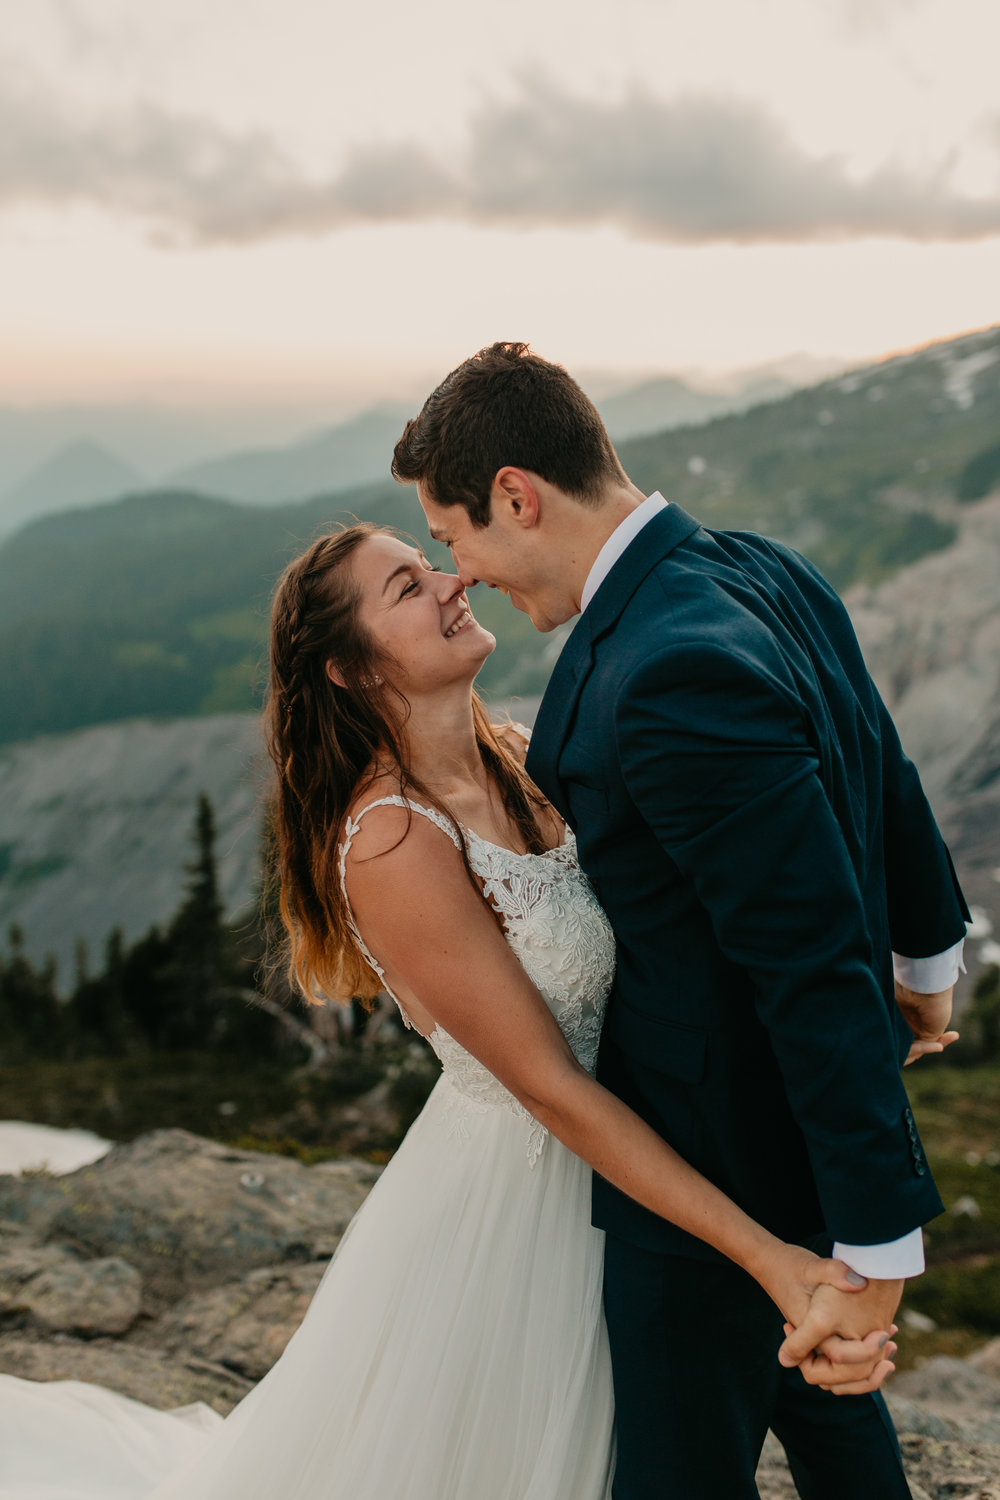 Nicole-Daacke-Photography-Mt-Rainier-elopement-photographer-washington-mountain-epic-wedding-photography-wildflowers-at-rainier-pine-tree-cloudy-summer-day-at-mountain-rainier-63.jpg